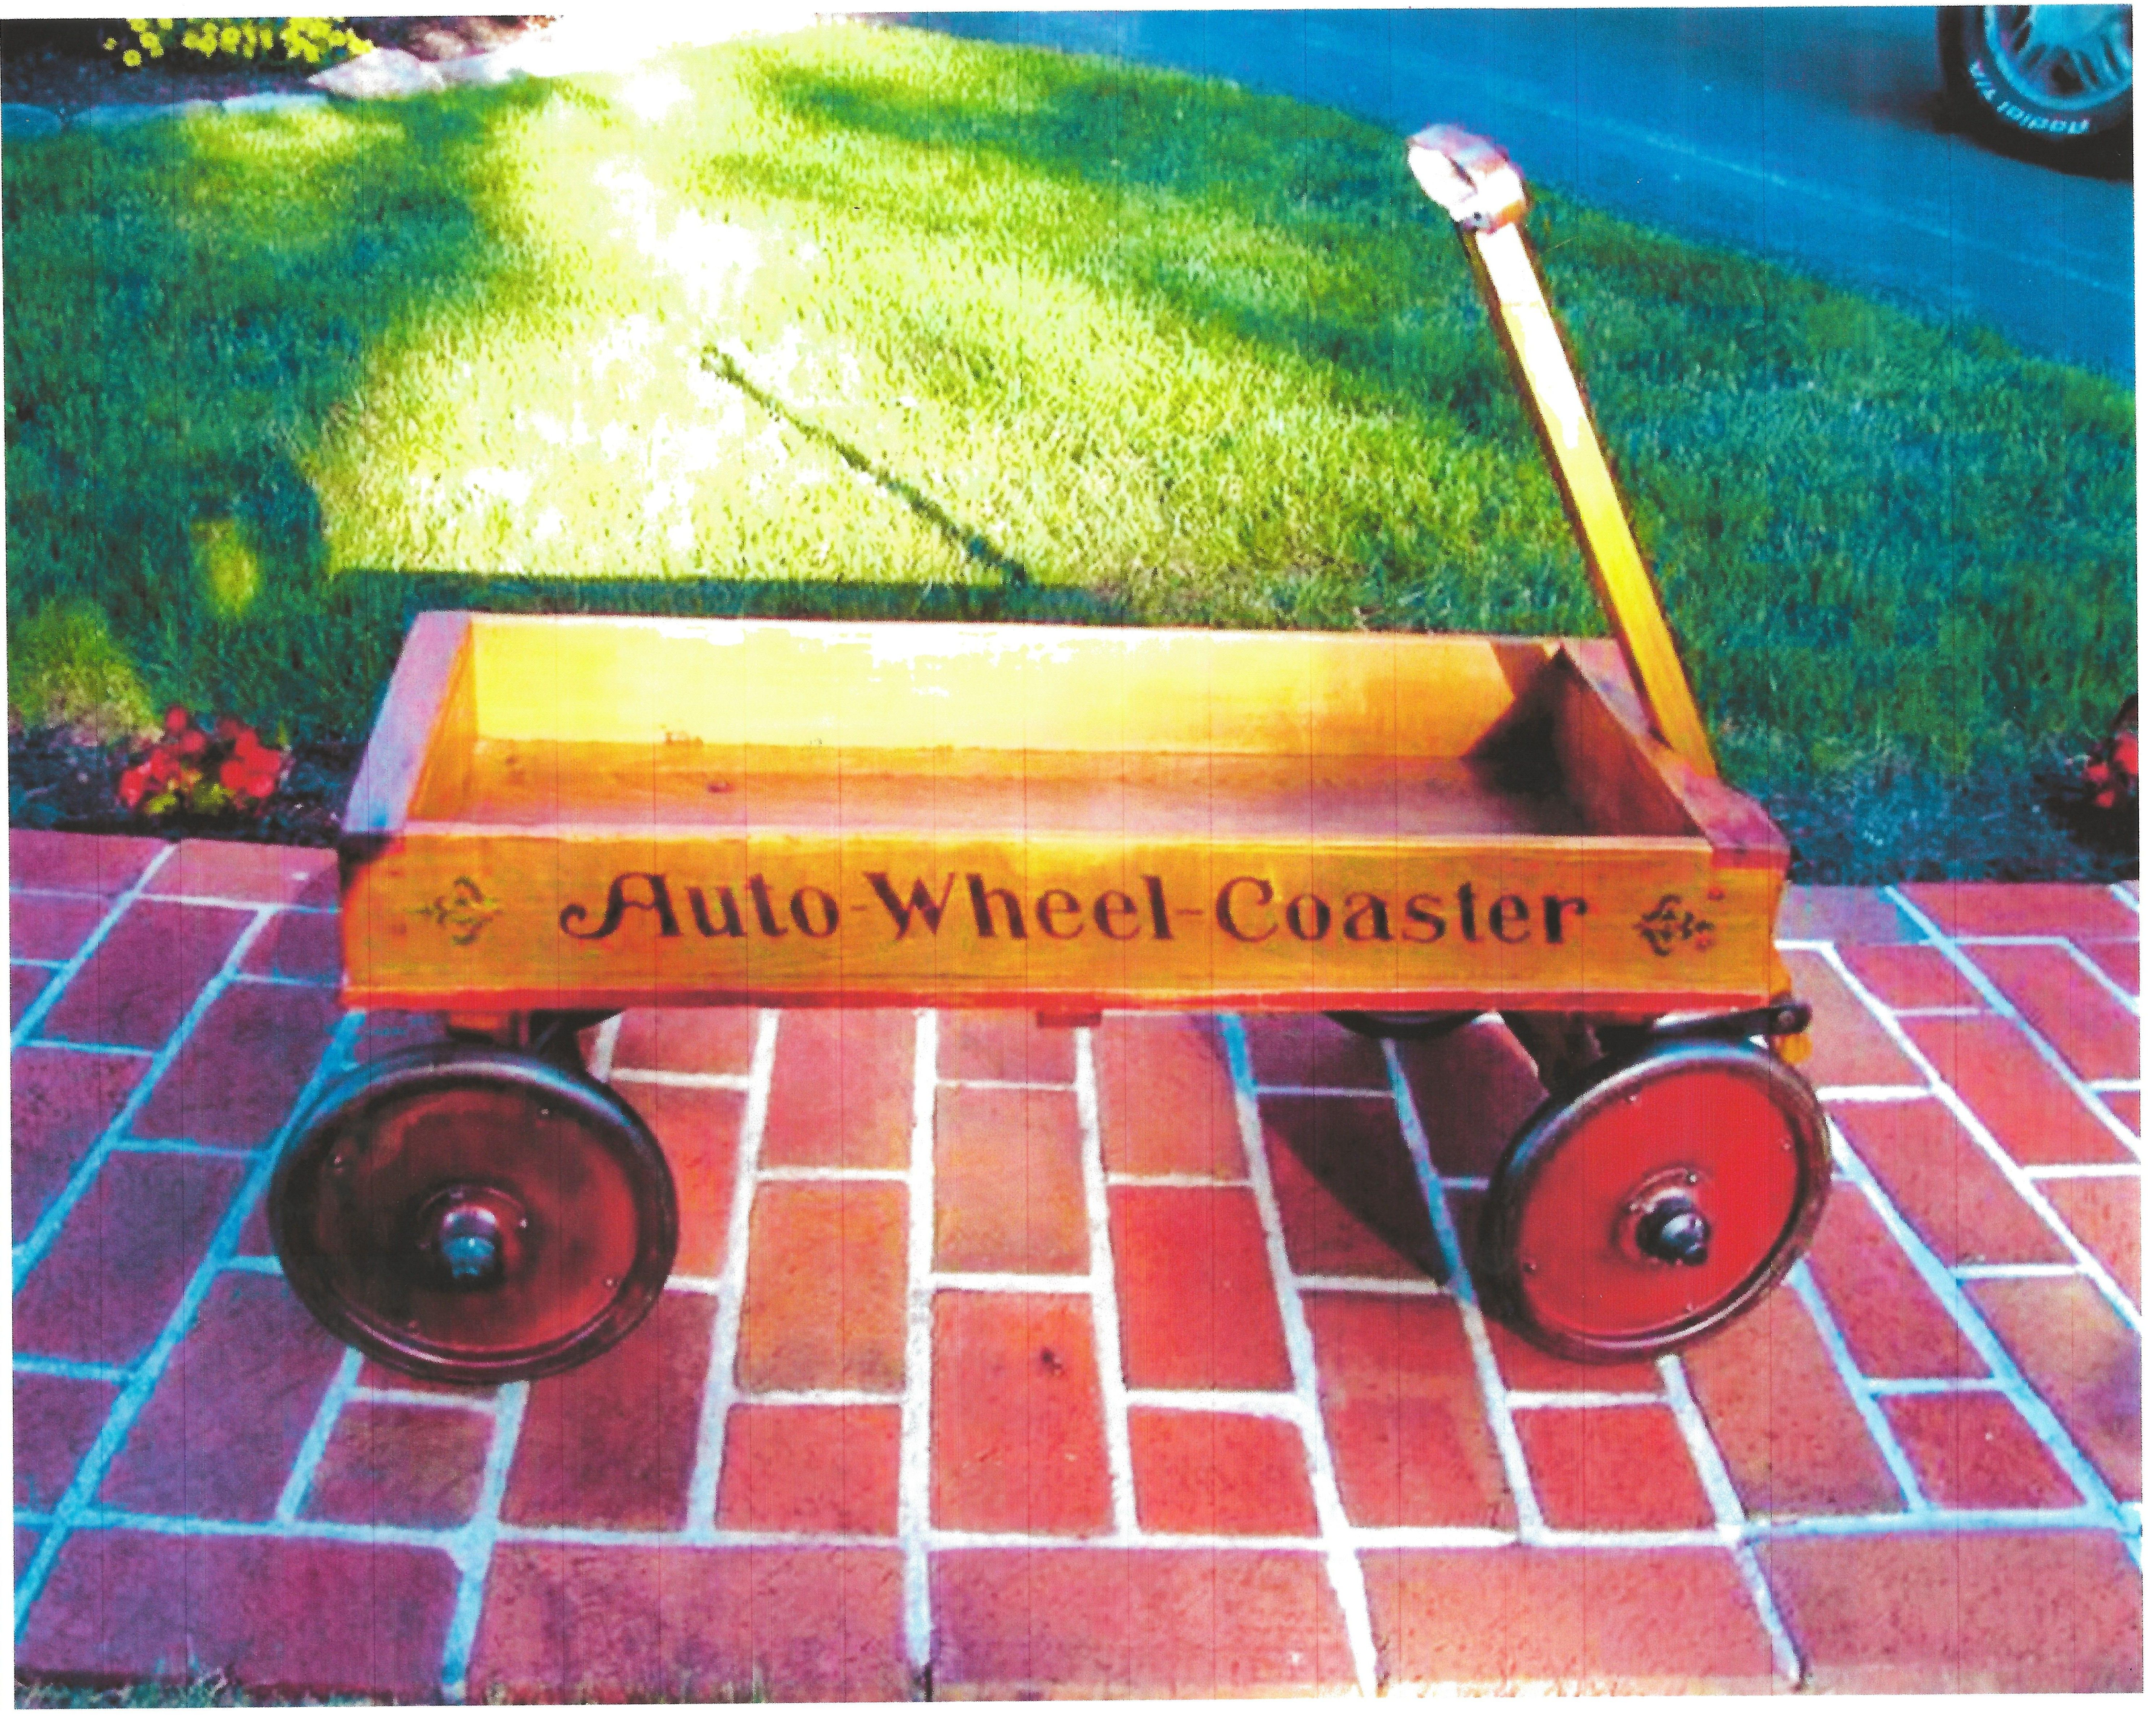 Claasic vintage toys vintage toys second shout out http www - Circa 1918 Auto Wheel Coaster